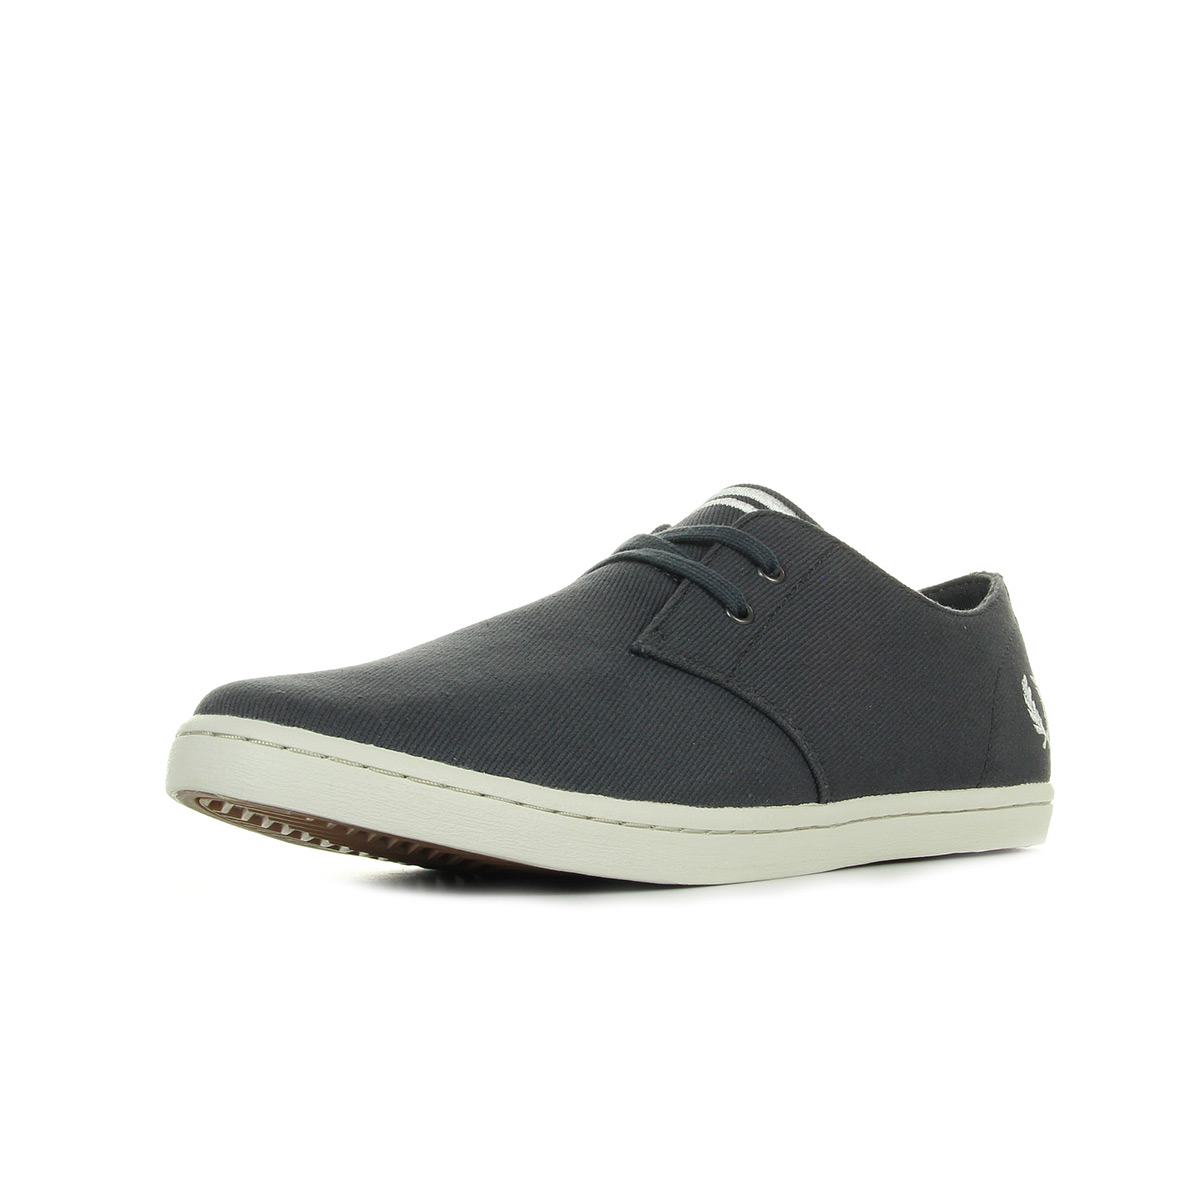 Baskets Fred Perry Byron Low Twill Charcoal gaKDRvp6ZT